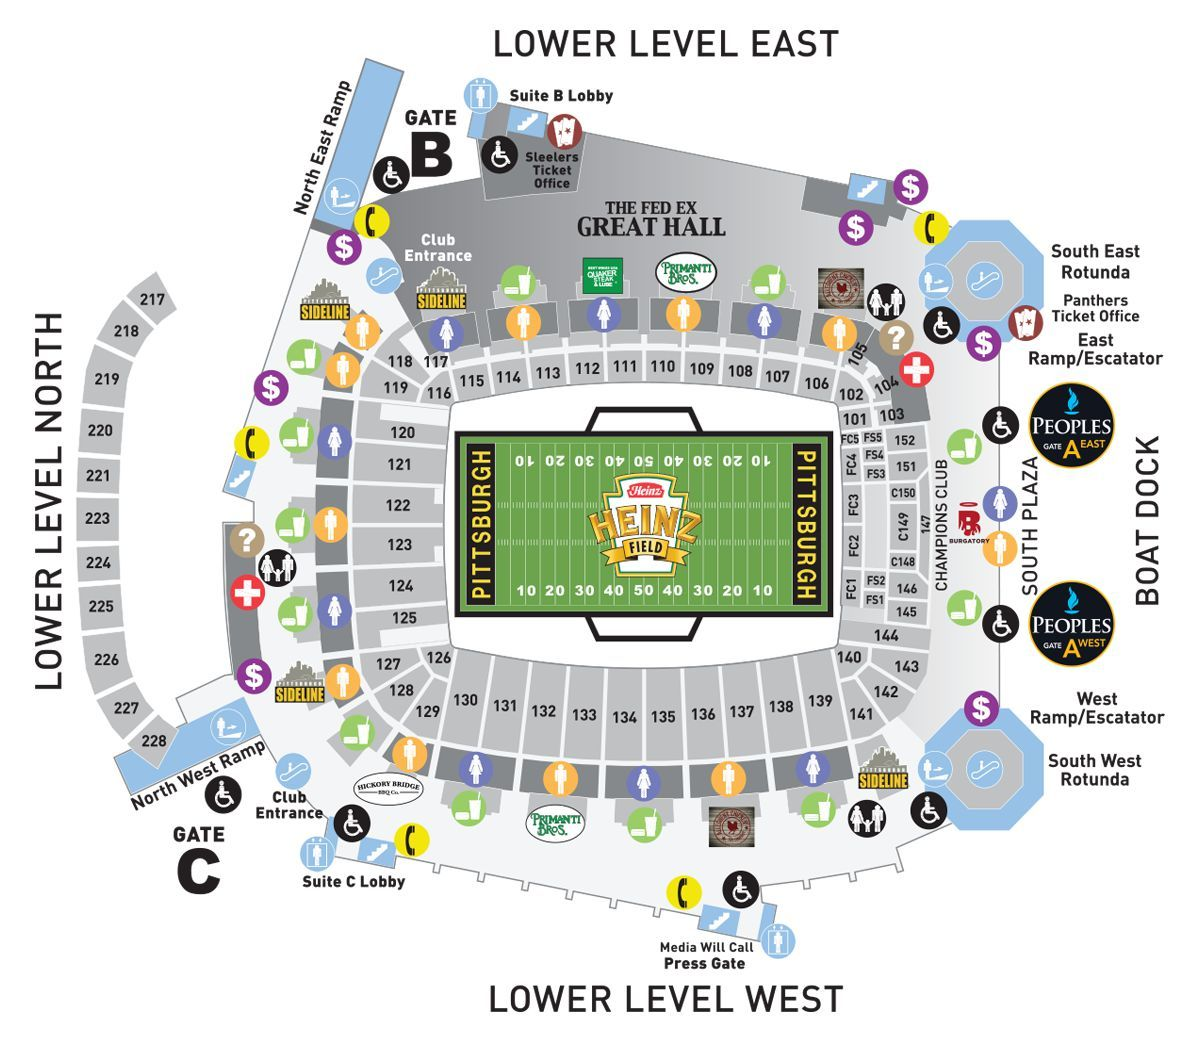 View The Heinz Field Seating Charts And Stadium Diagrams To Choose The Best Seat Or Plan Where You Will Get Your Food And Drin Heinz Field Seating Charts Heinz